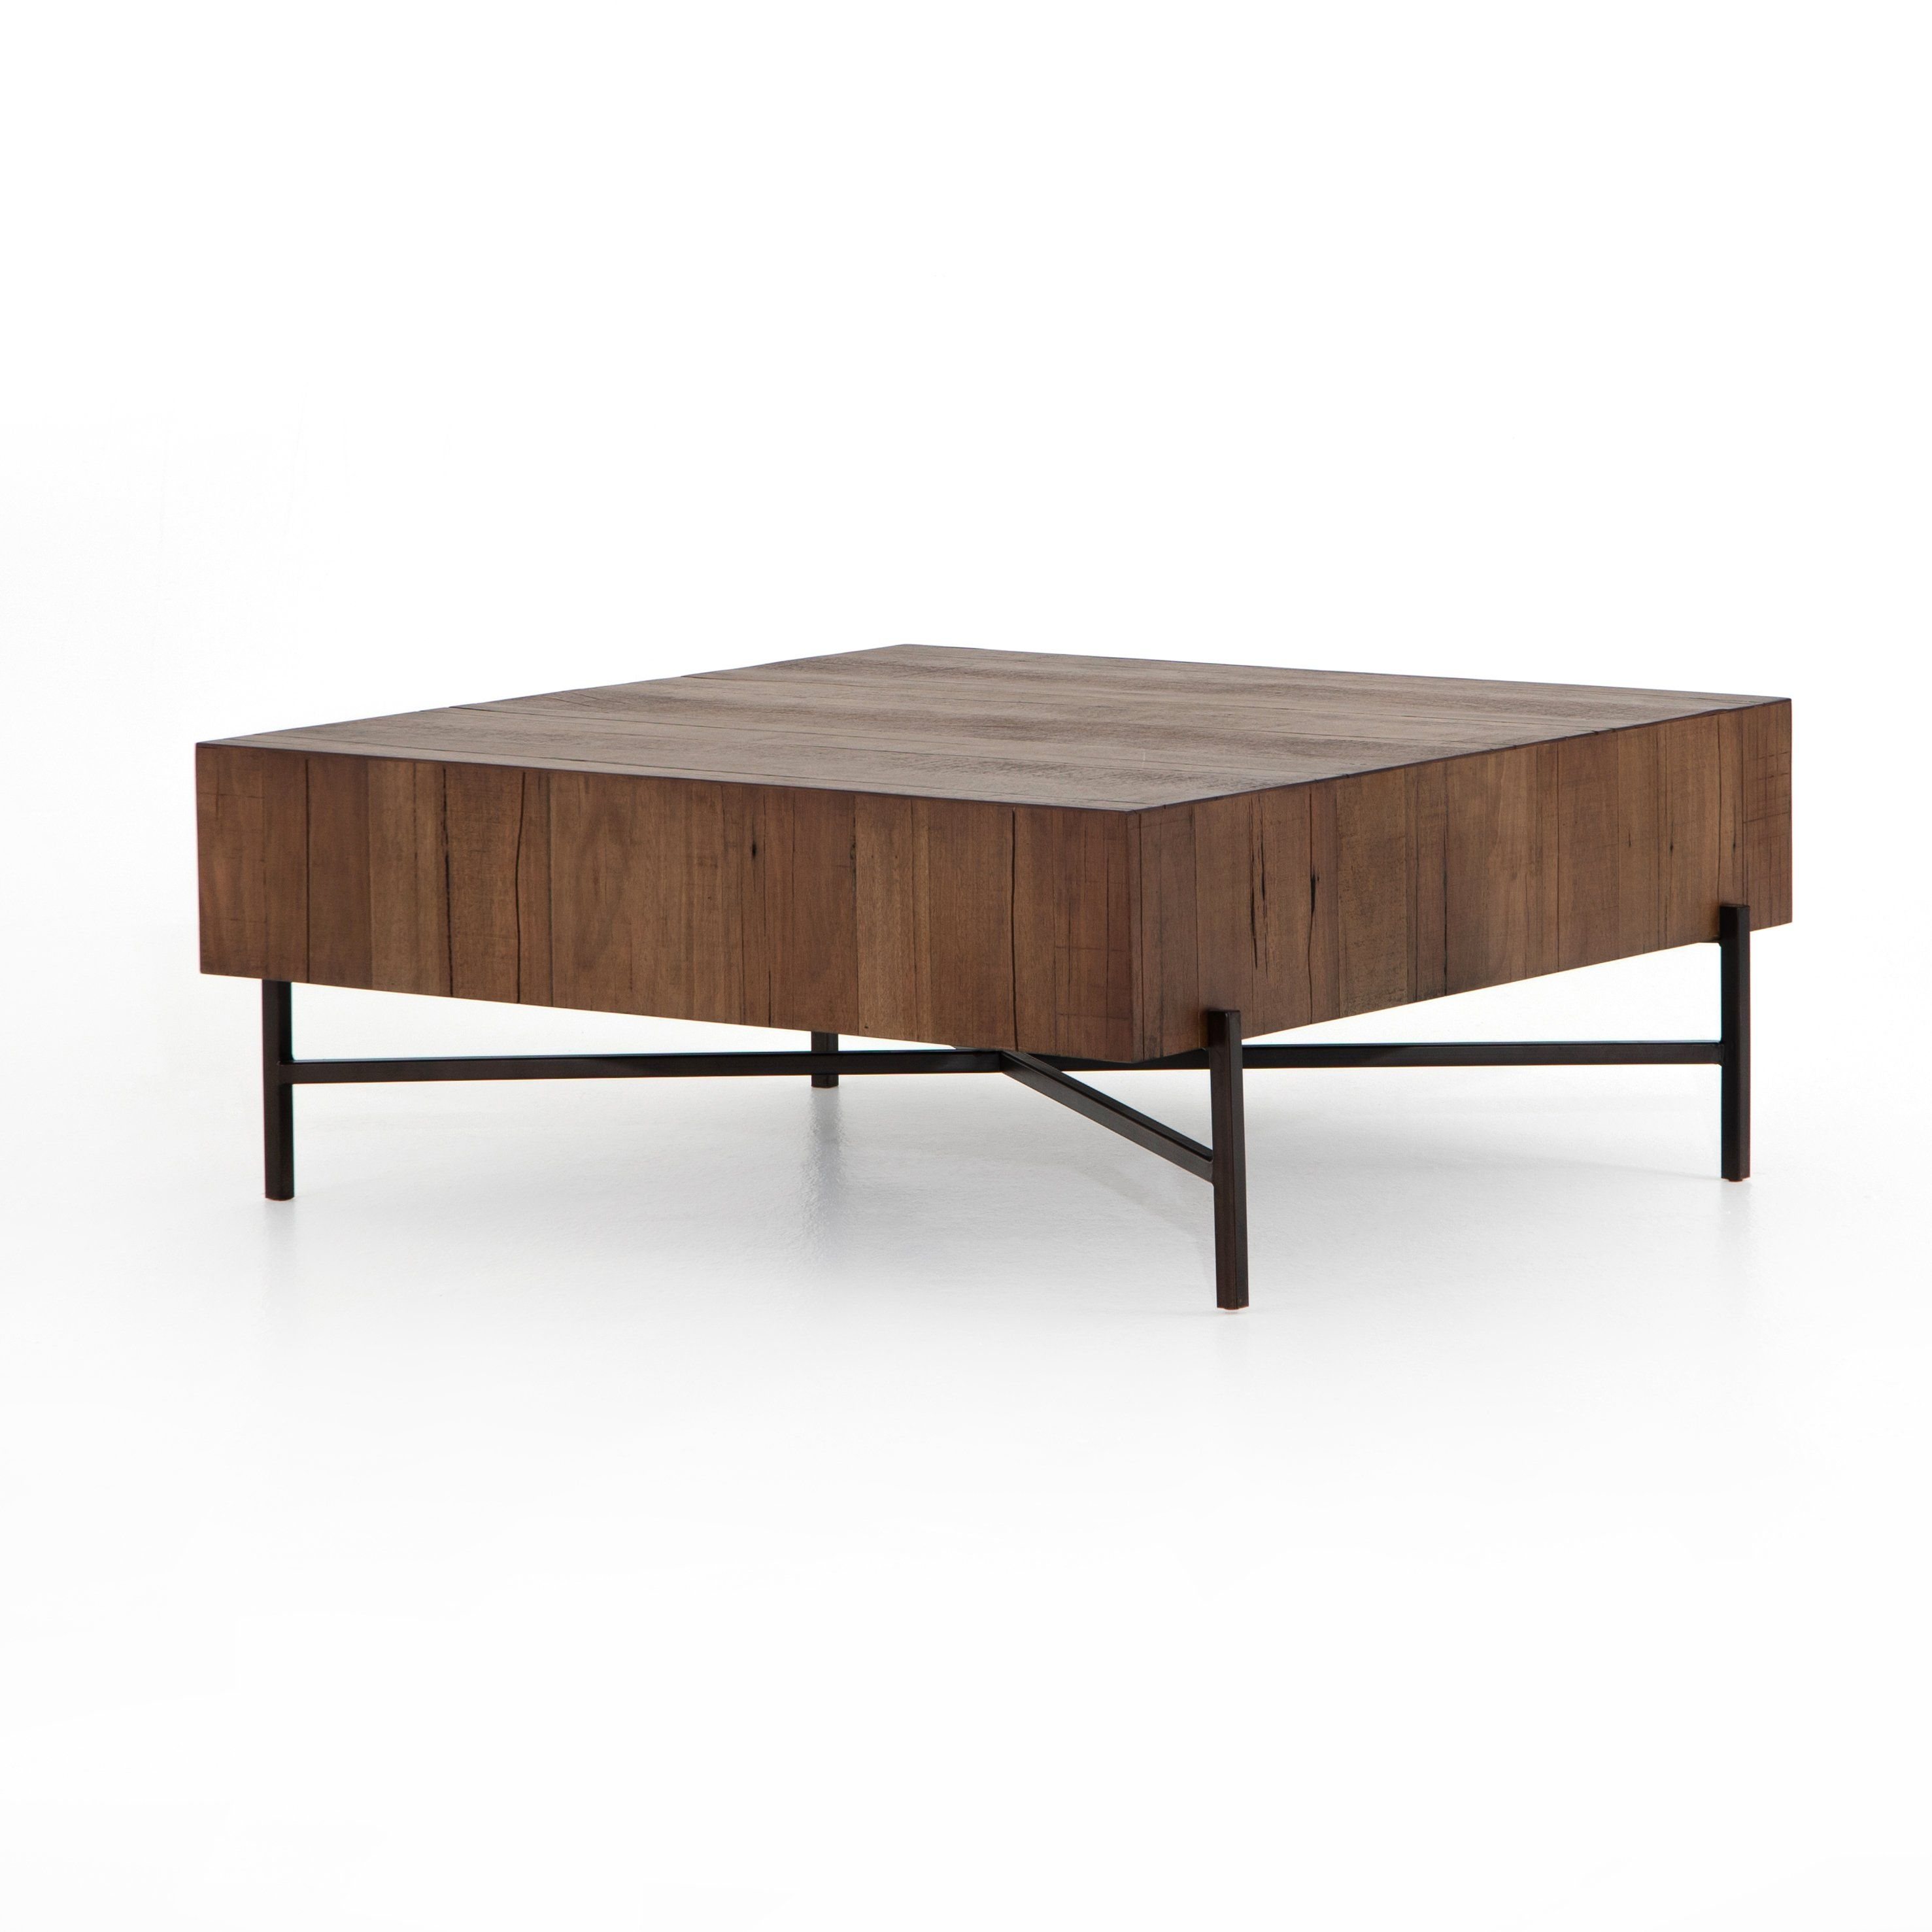 Tinsley Square Coffee Table In 2021 Coffee Table Coffee Table Square Coffee Table Inspiration [ 2955 x 2955 Pixel ]